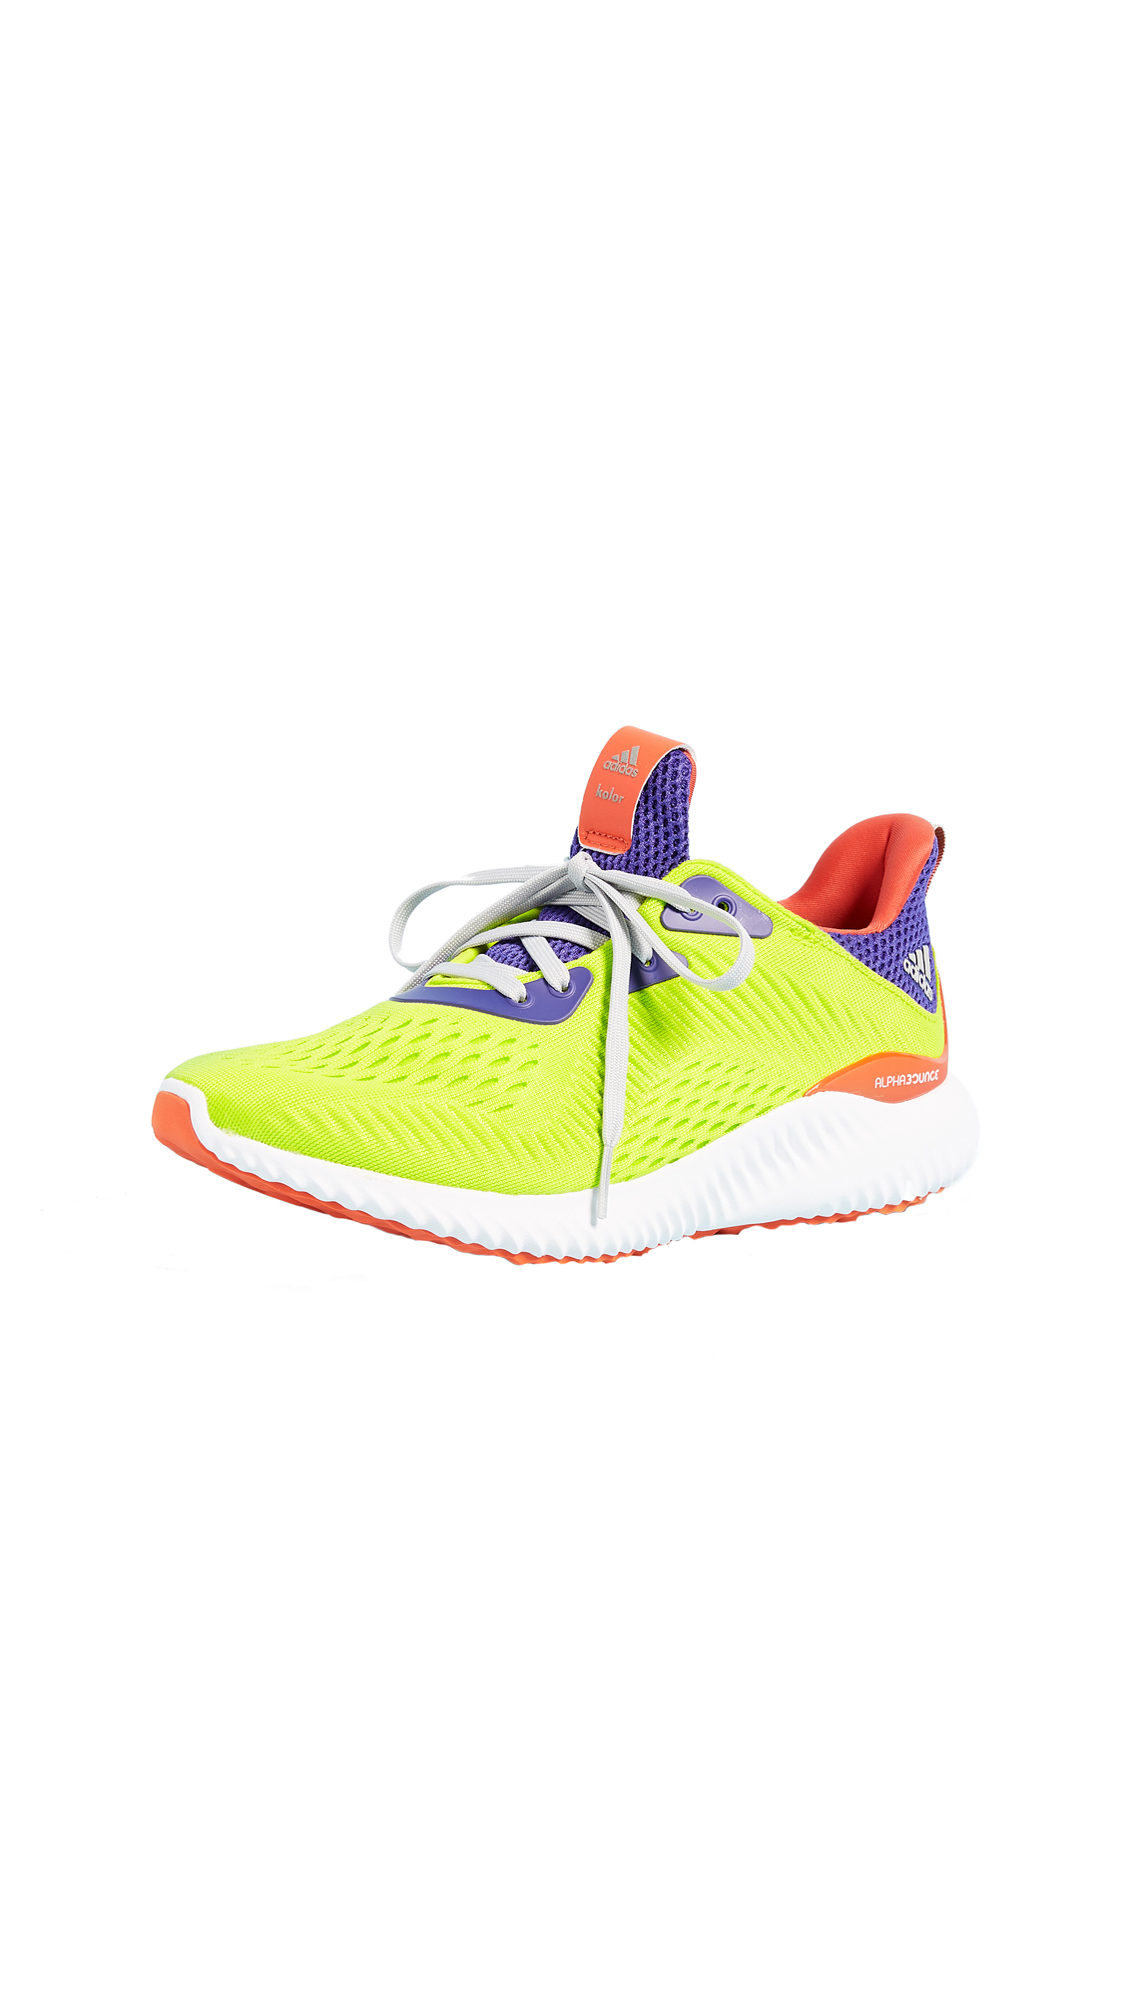 Adidas Alphabounce KOLOR Sneakers - Energy/Energy Ink/Yellow